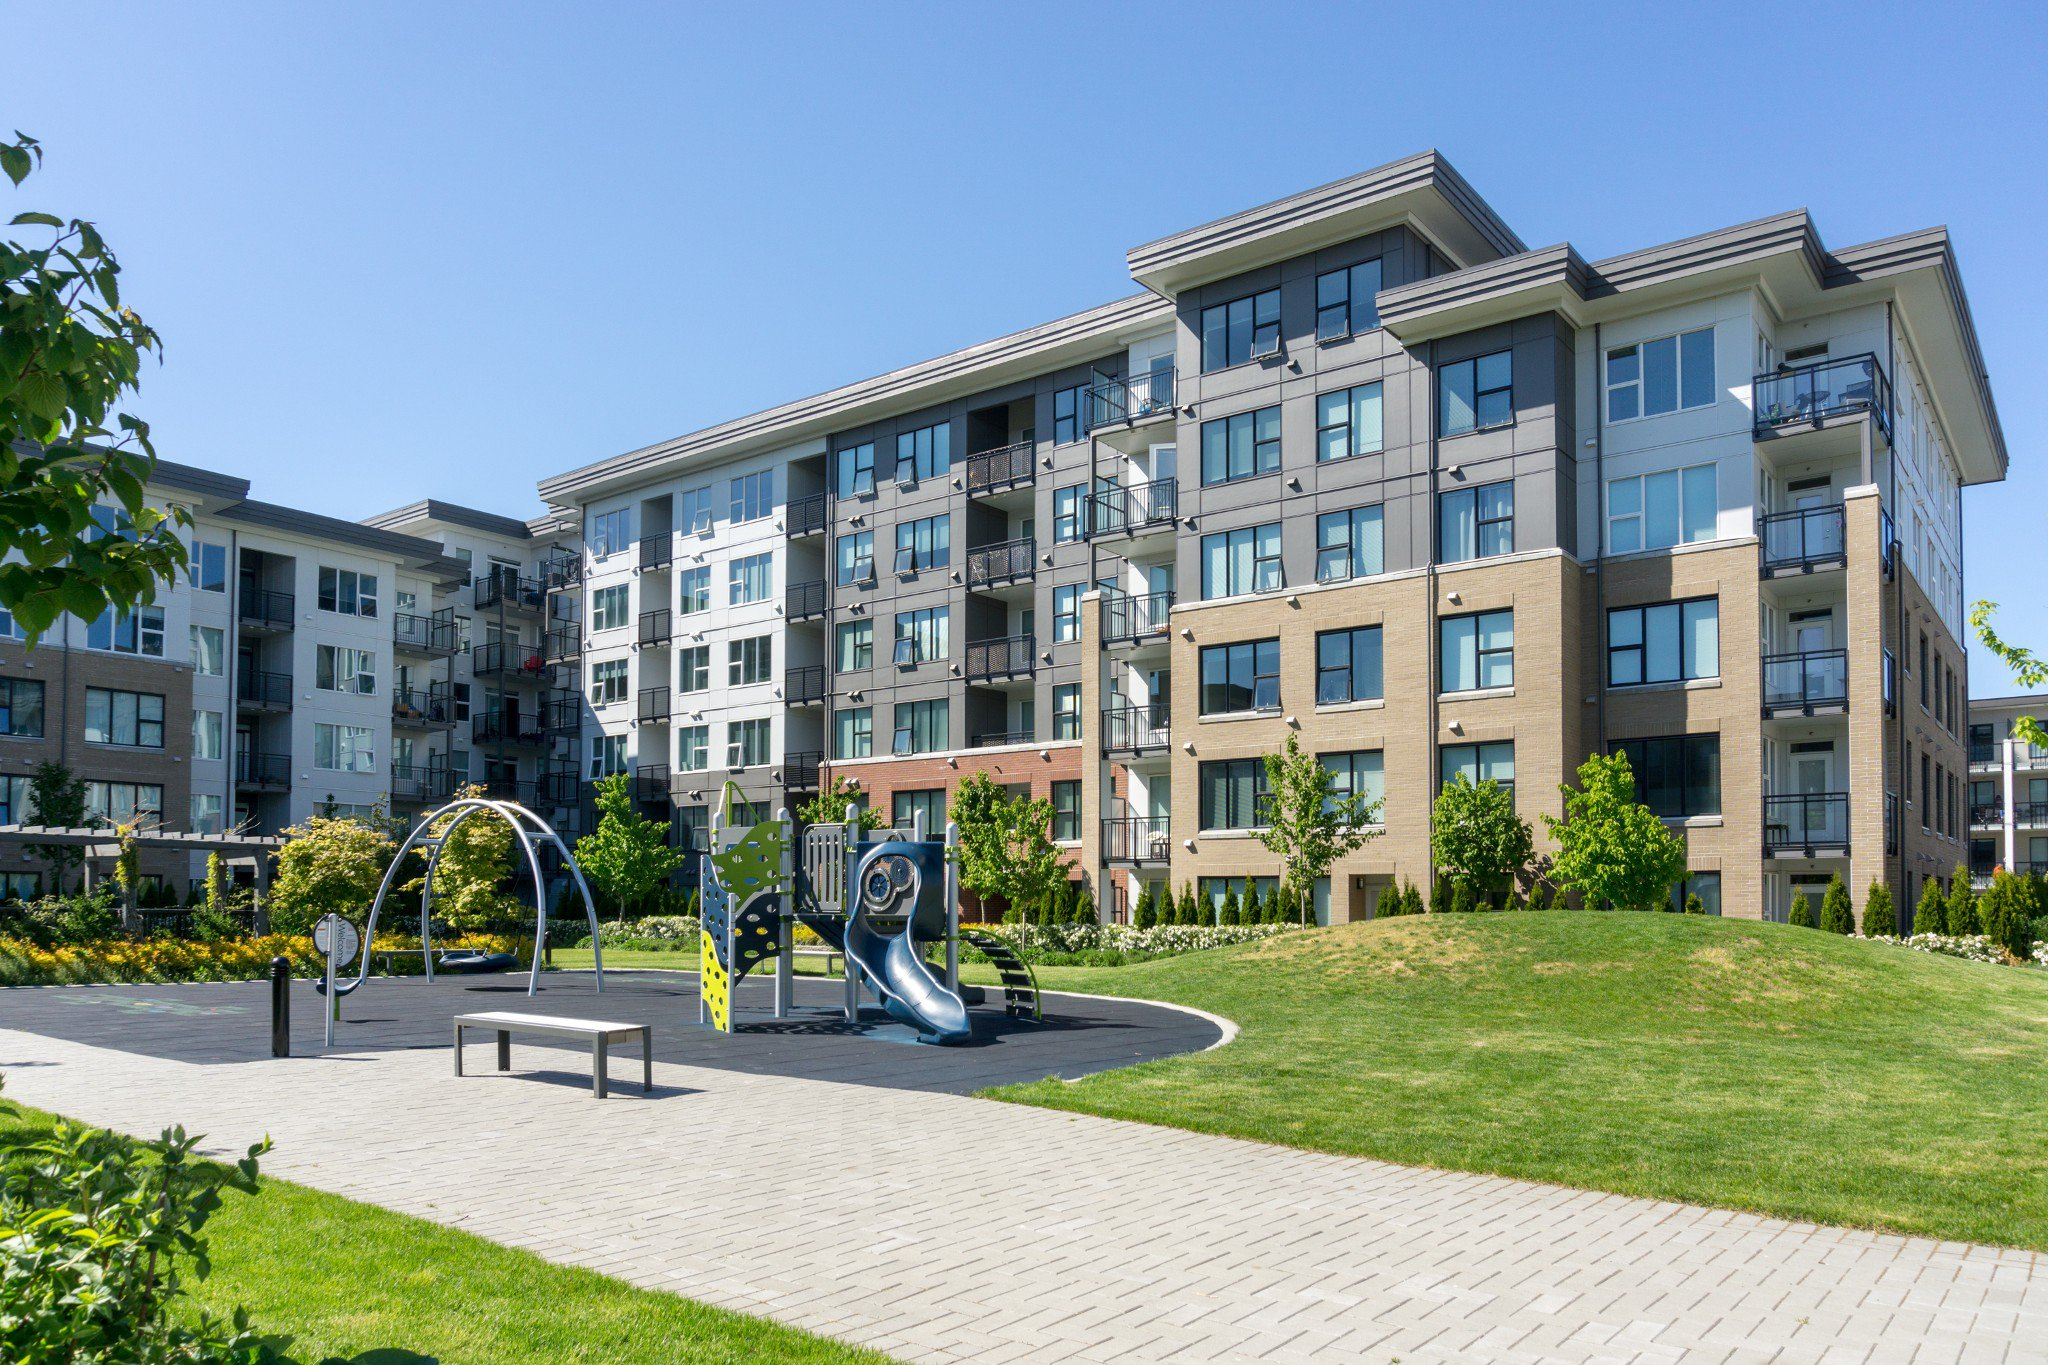 """Photo 38: Photos: 402 9311 ALEXANDRA Road in Richmond: West Cambie Condo for sale in """"ALEXANDRA COURT"""" : MLS®# R2266613"""